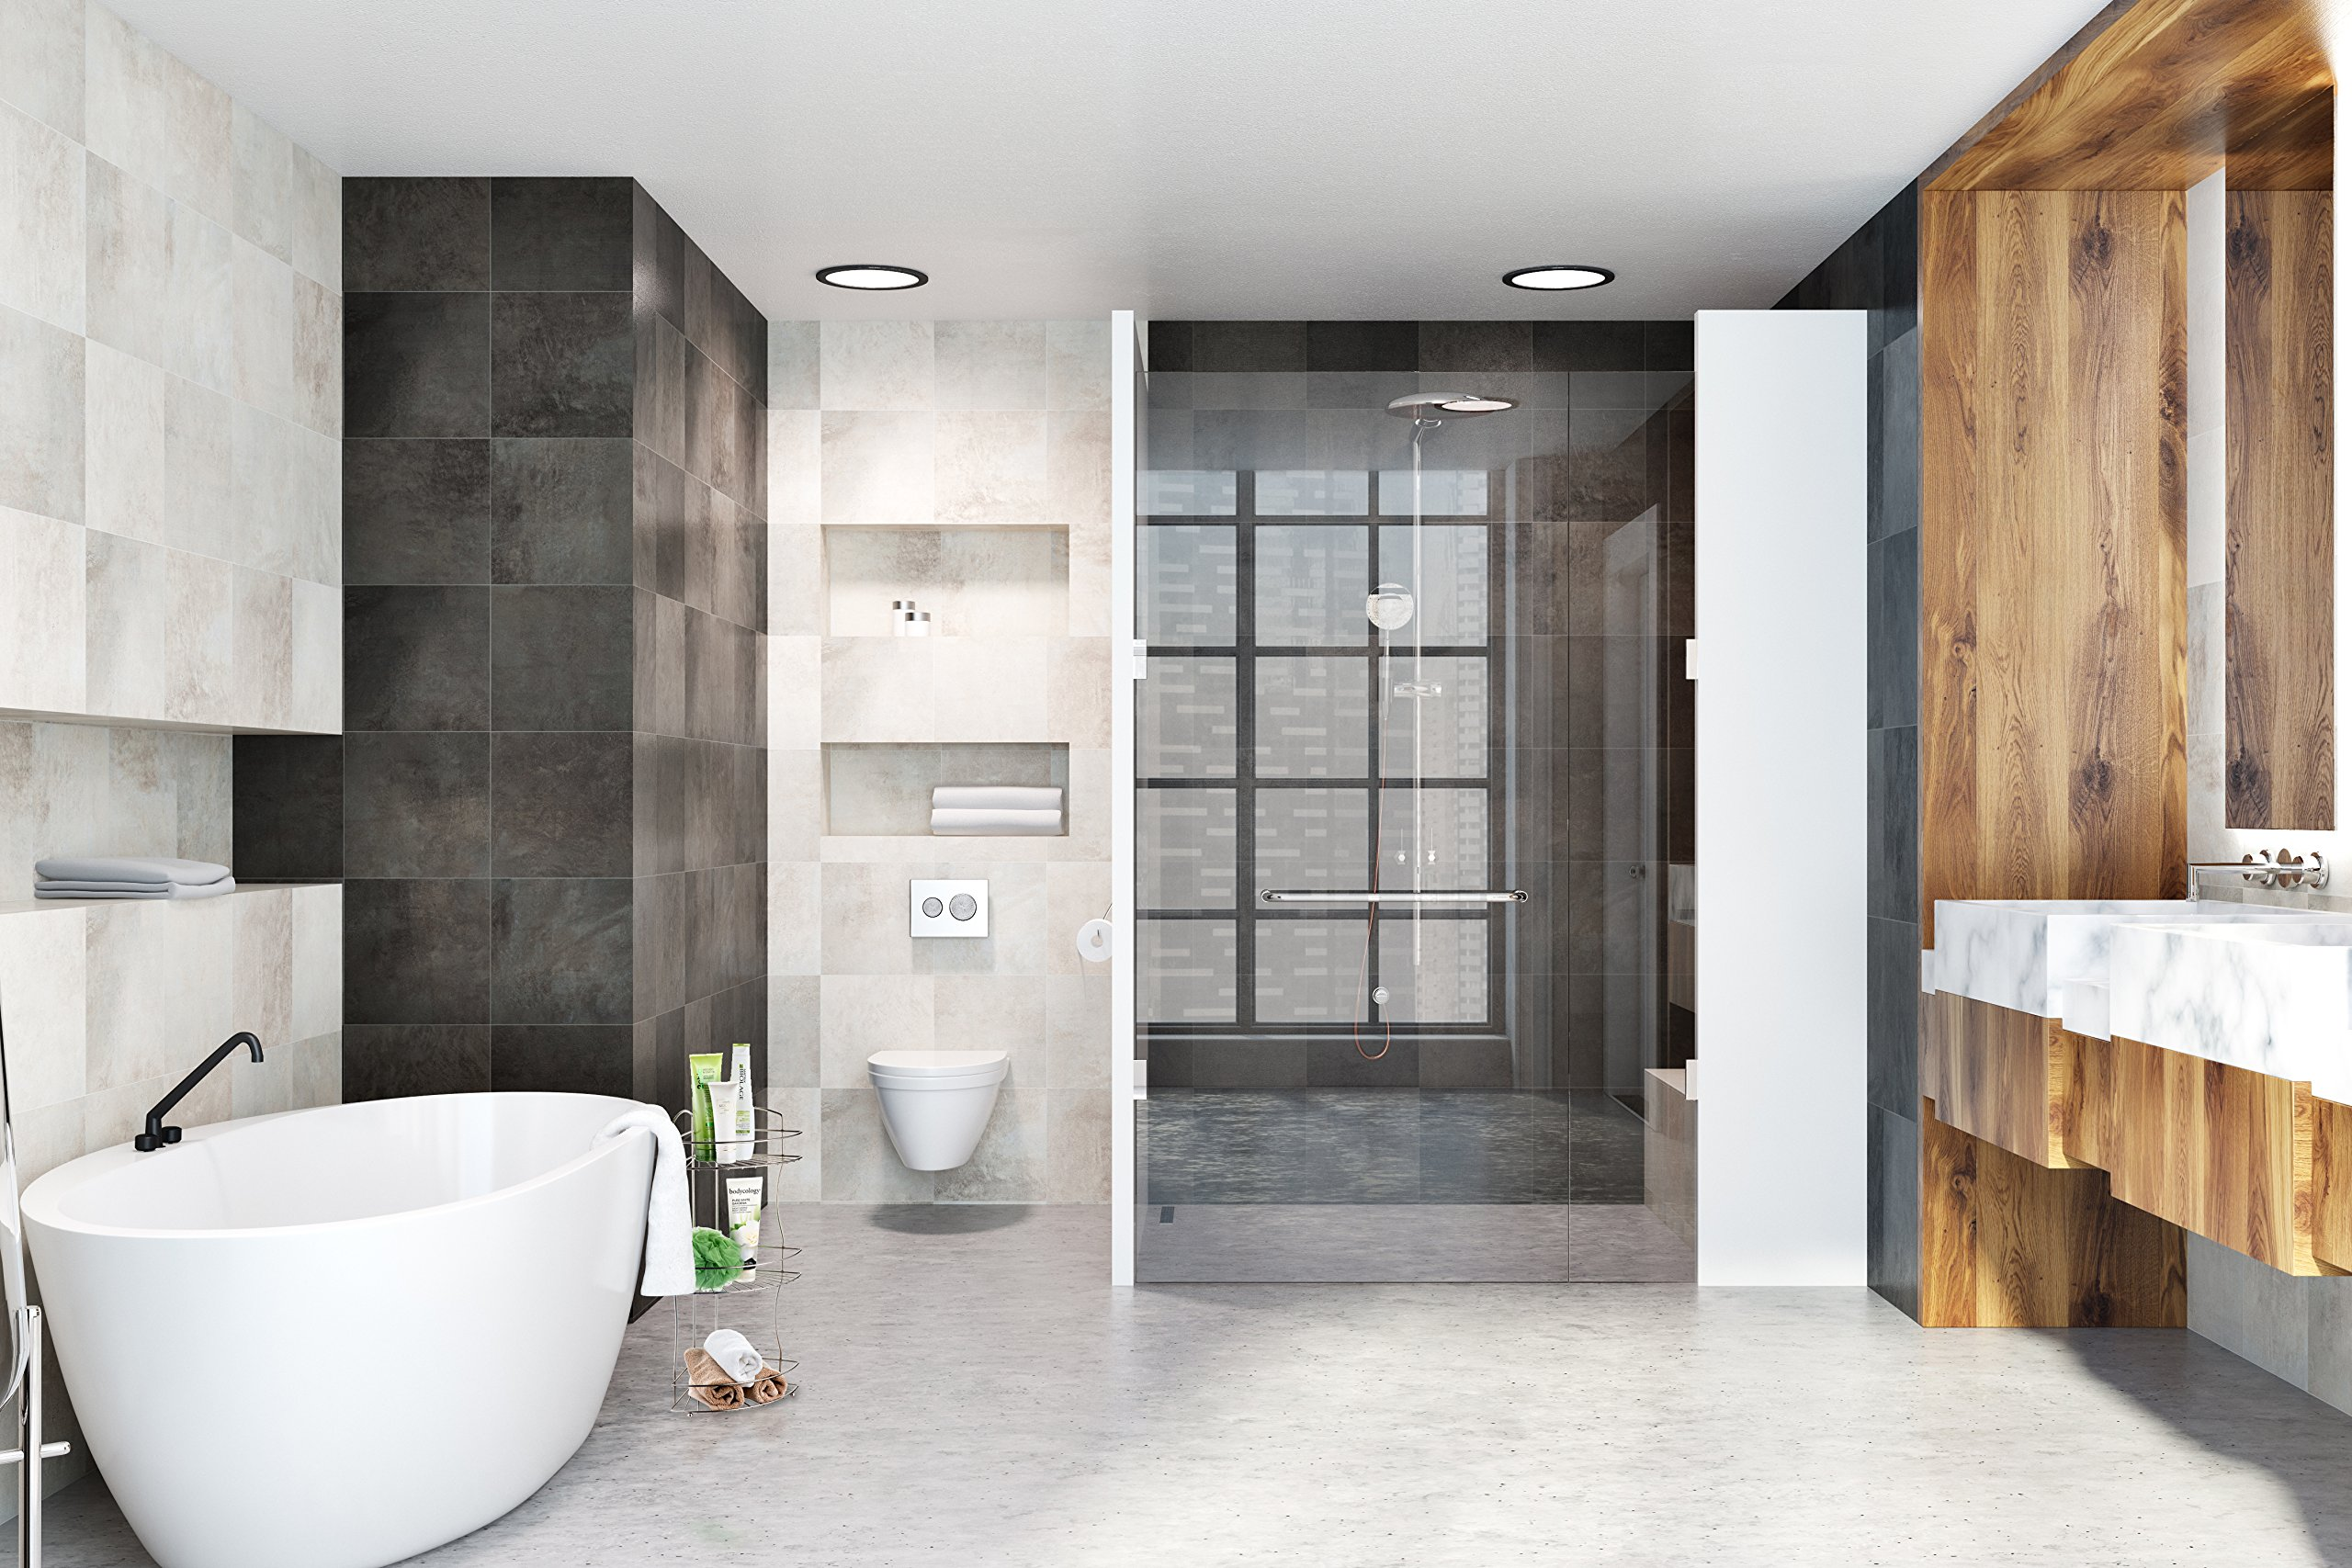 AMG and Enchante Accessories Free Standing Bathroom Spa Tower Floor Caddy, FC232-A SNI, Satin Nickel by AMG (Image #4)